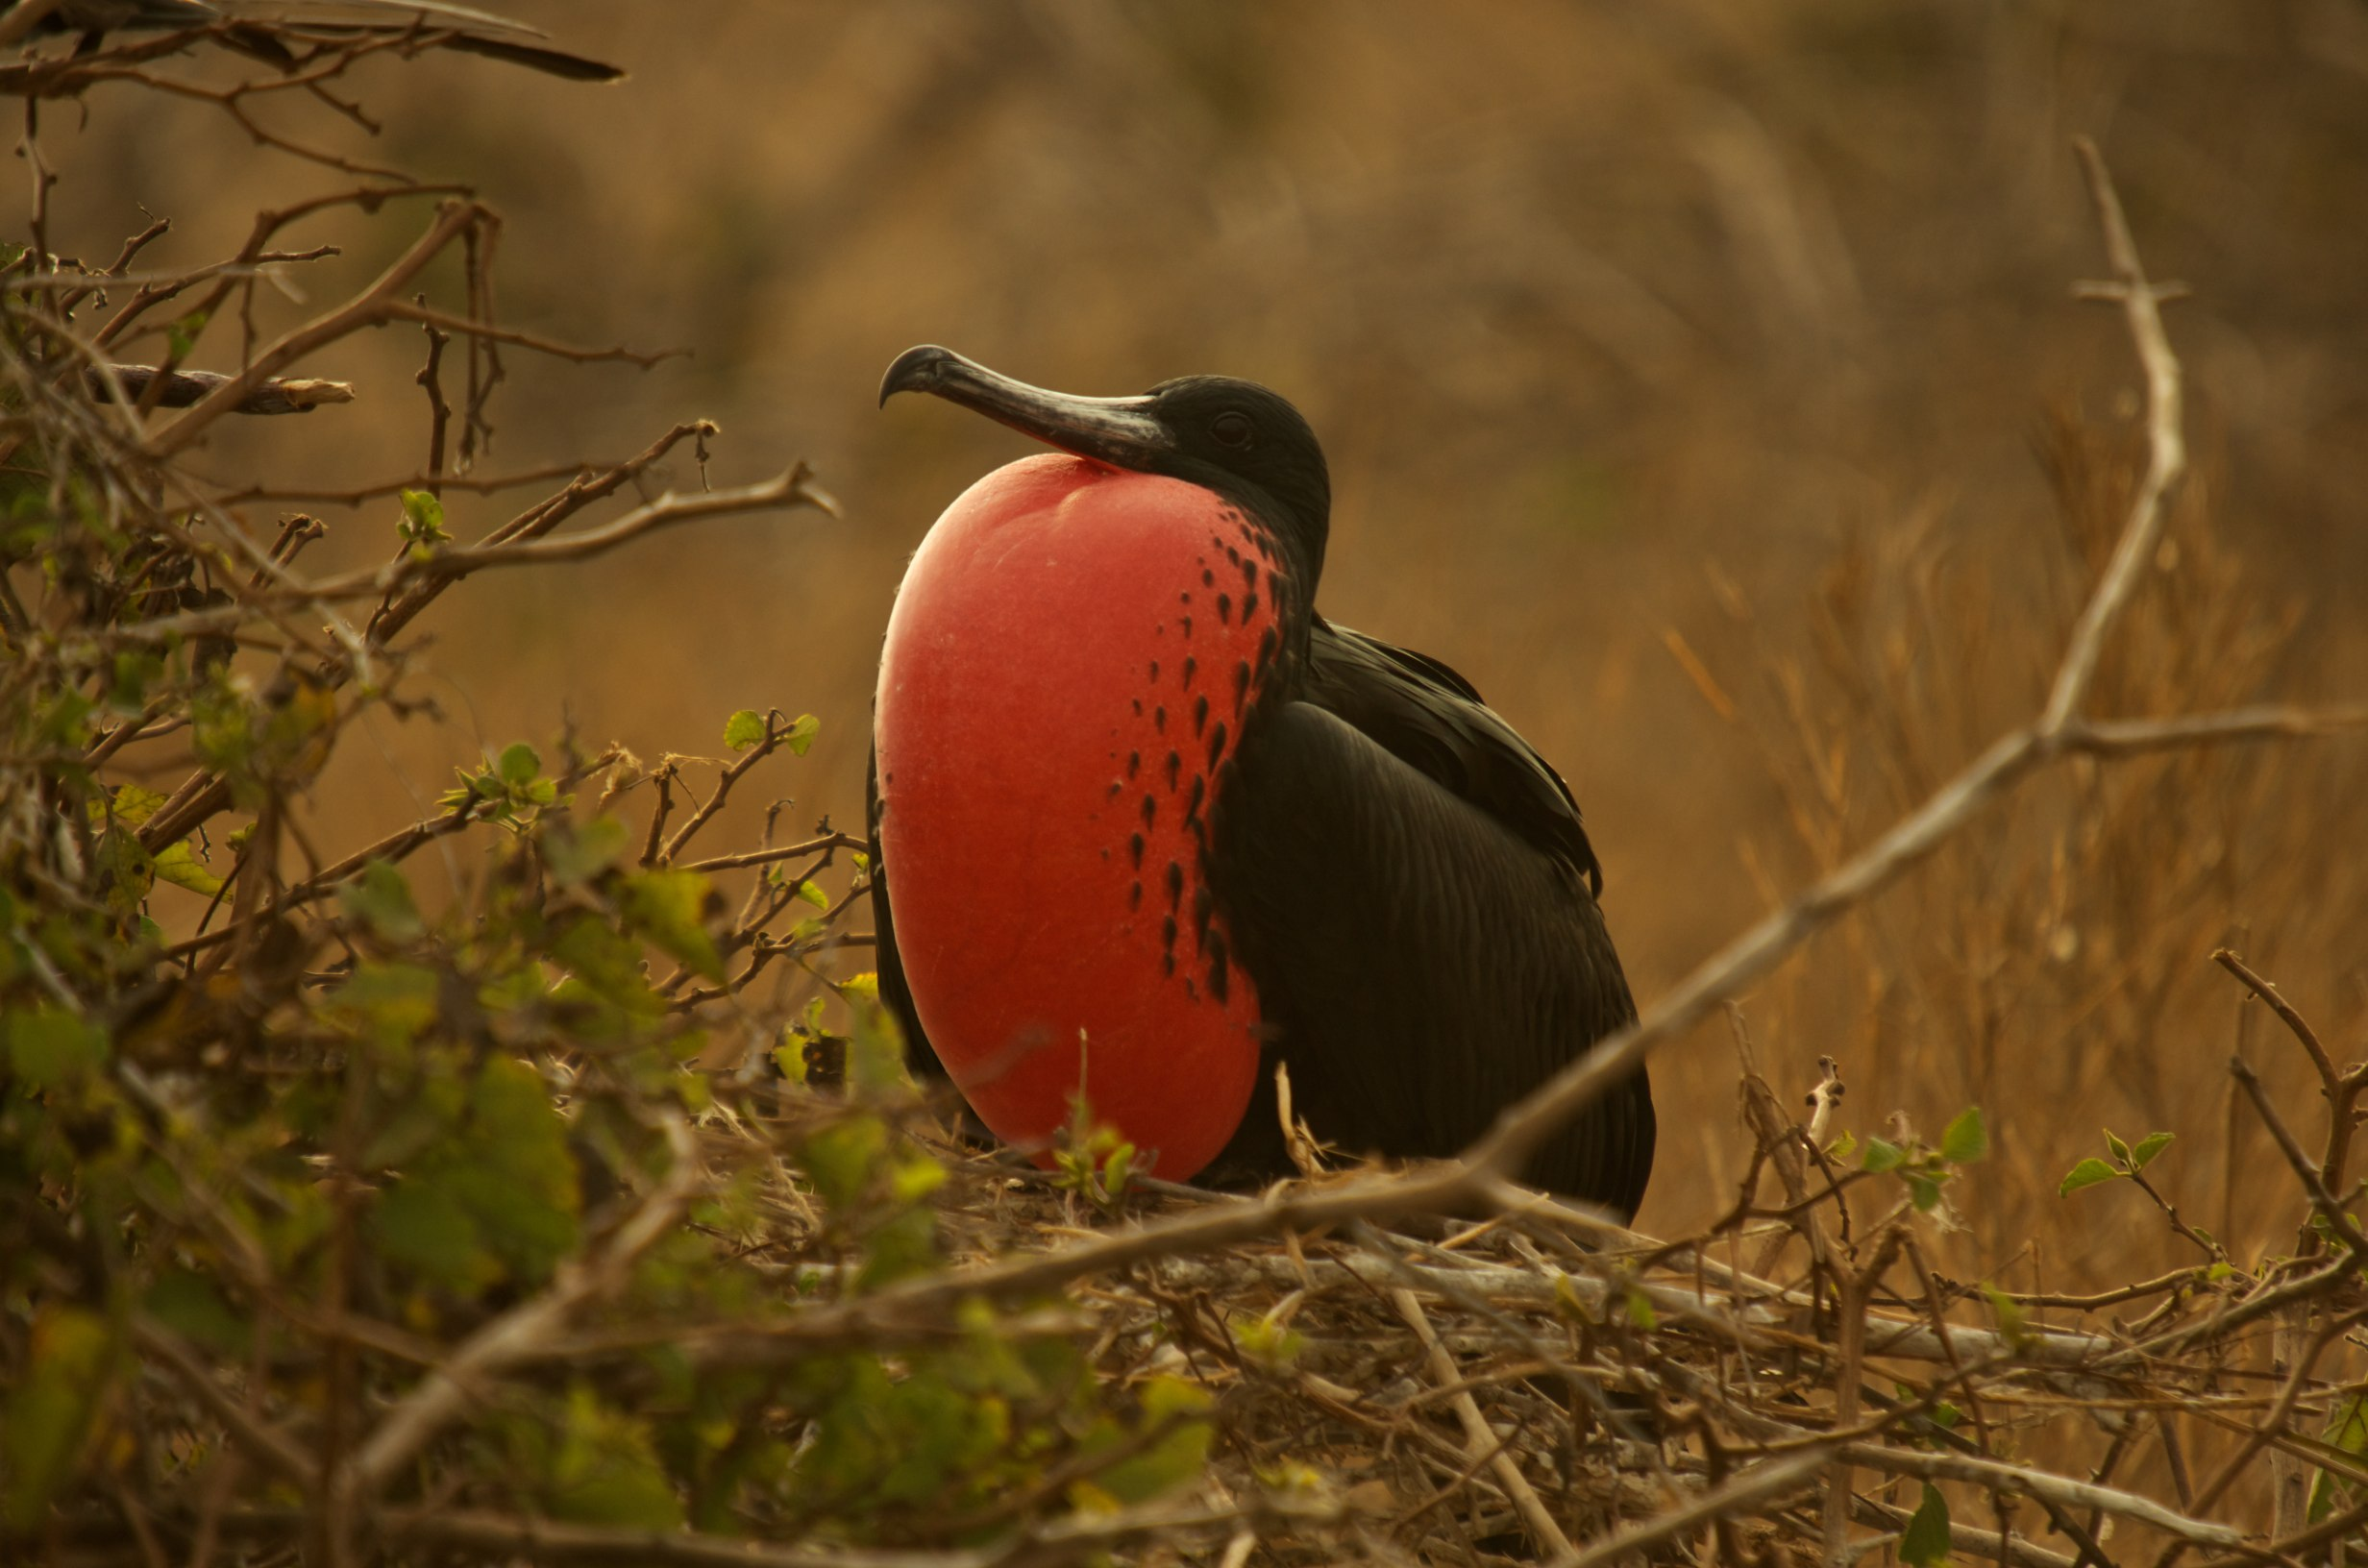 Magnificent Frigatebird with inflated red throat pouch